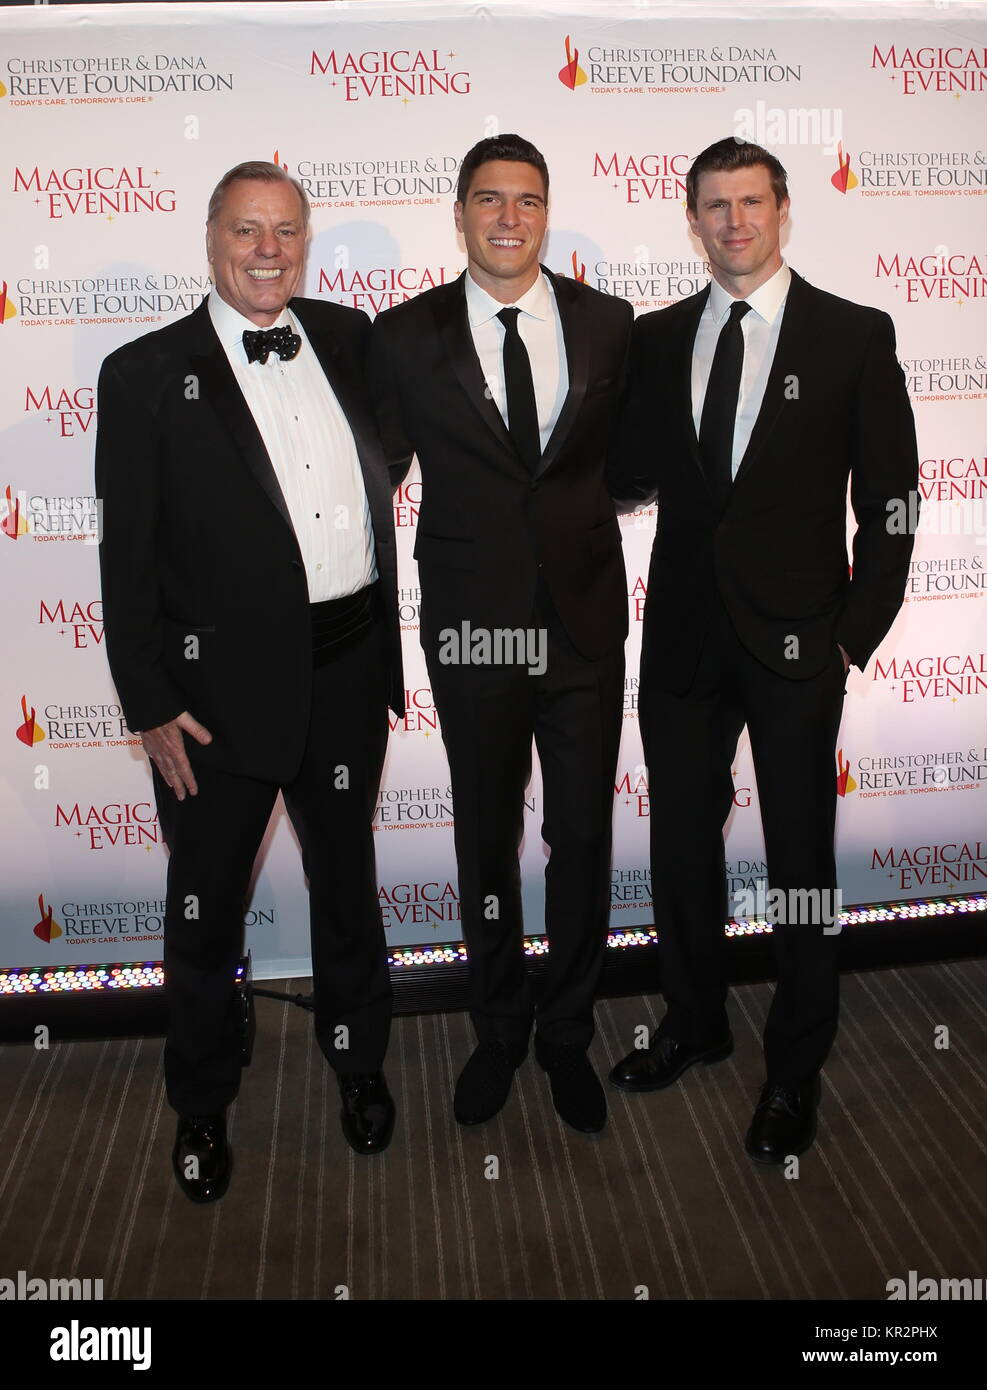 The Christopher & Dana Reeve Foundation Gala at the Conrad - Arrivals  Featuring: Peter Wilderotter, Will Reeve, - Stock Image